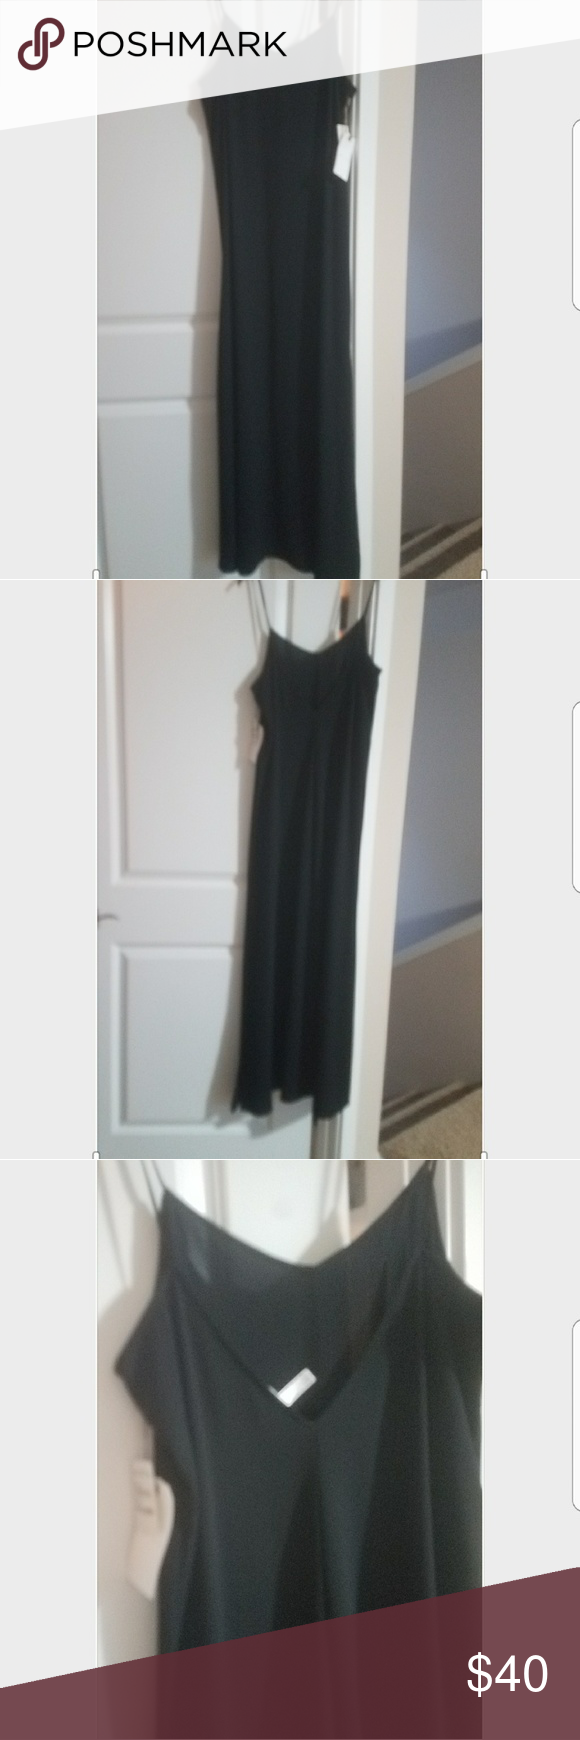 Long black spaghetti strap dress simple long black dress brand new